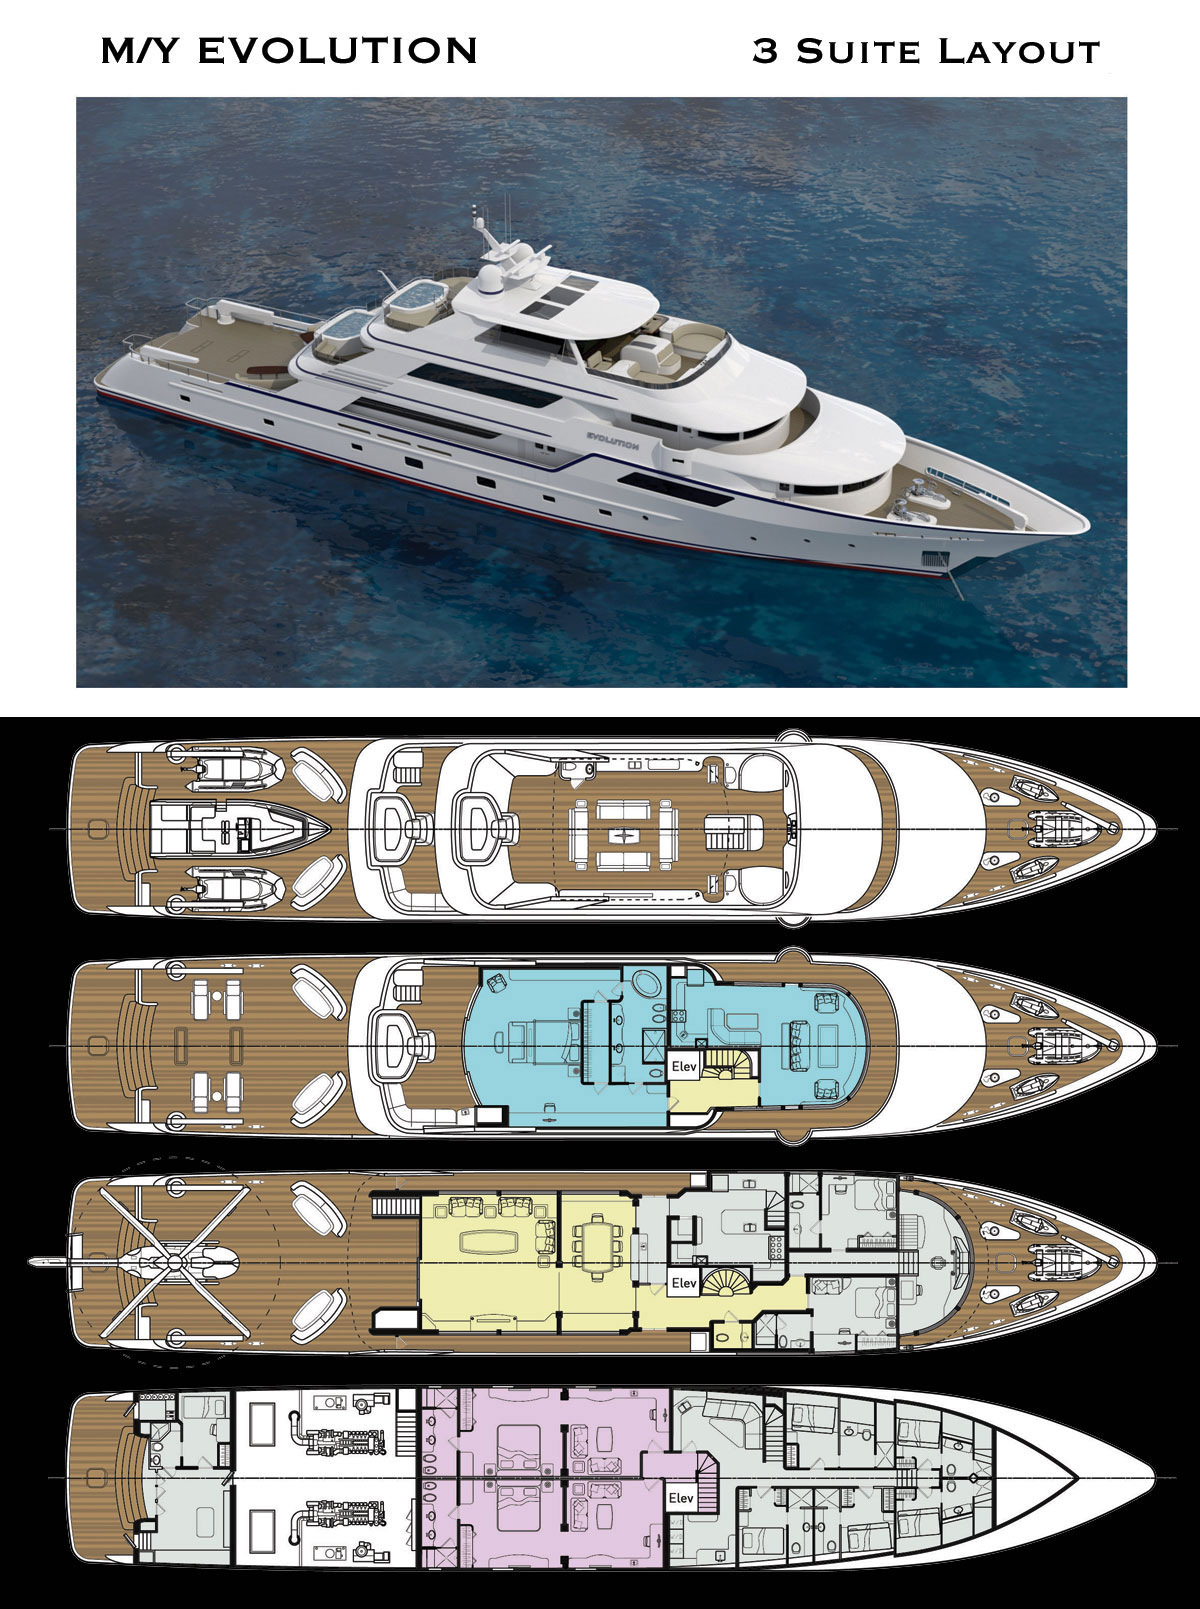 Deck Layout for 50 Meter Luxury Explorer Yacht with 3 Staterooms